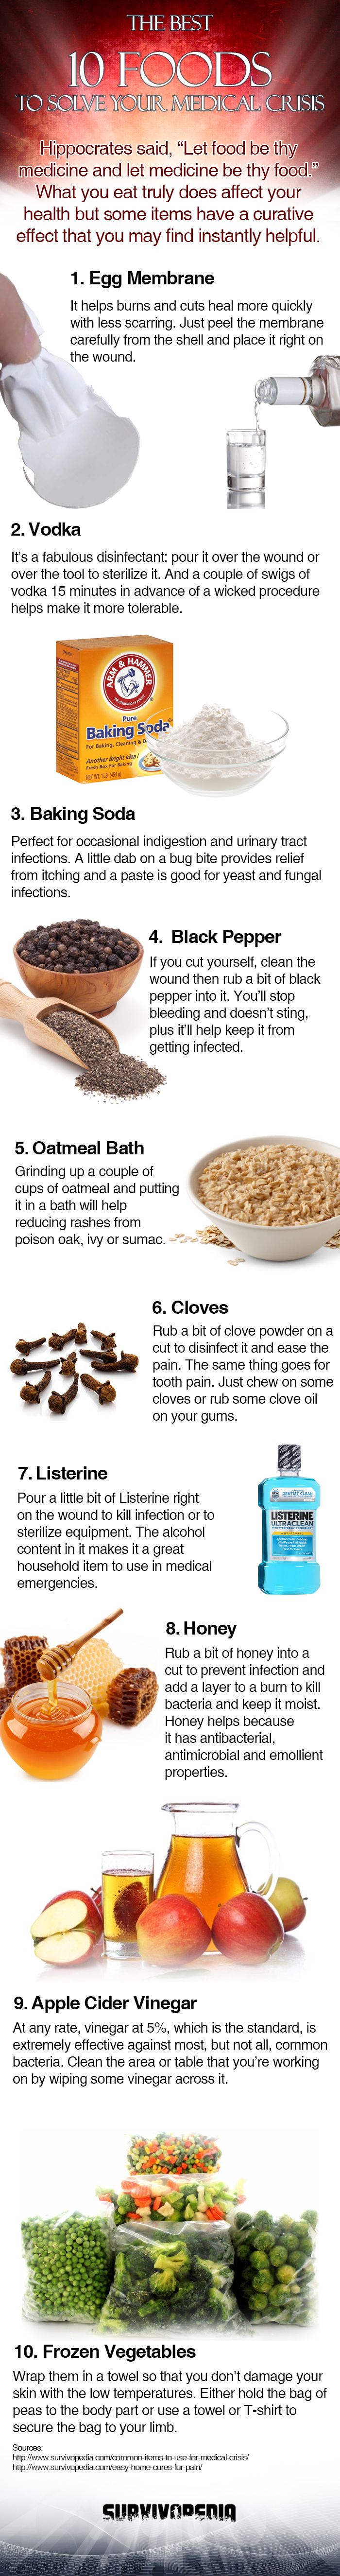 Survivopedia Infographic: 10 Foods to Use for Medical Crisis